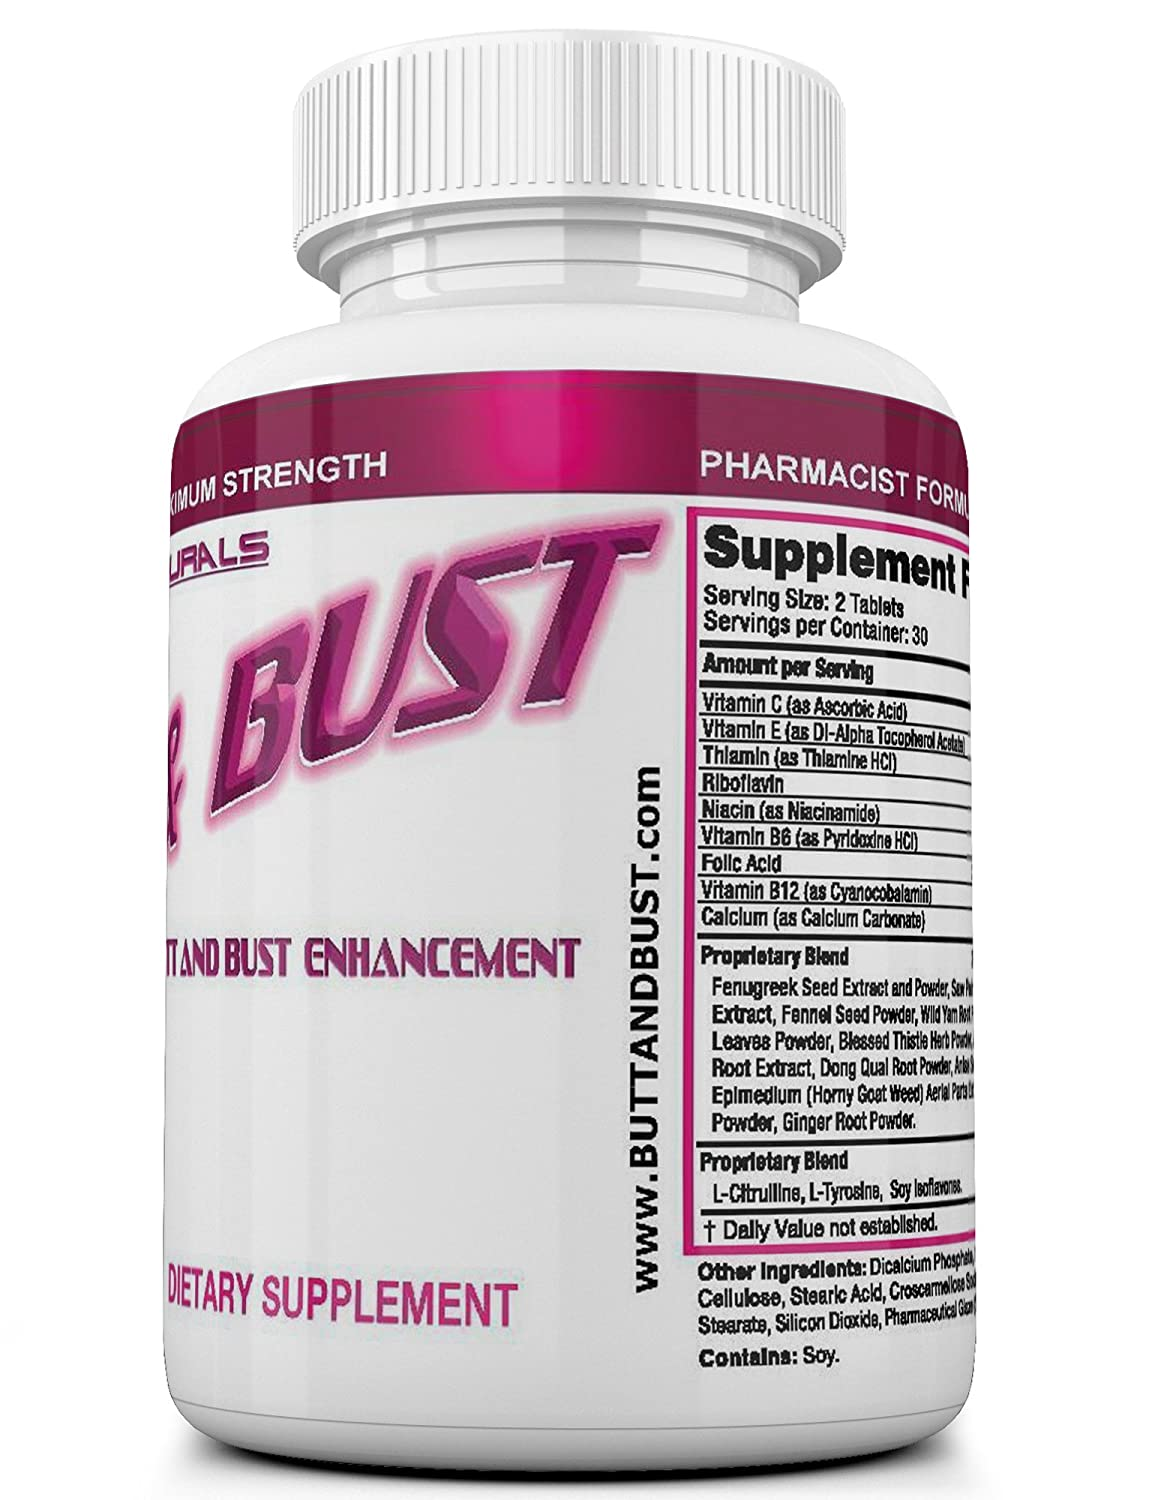 Amazon.com: BUTT AND BUST Natural Breast & Butt Augmentation And Enlargement Pills - 60 Tablets (Double Potency, 2640 mg).: Health & Personal Care